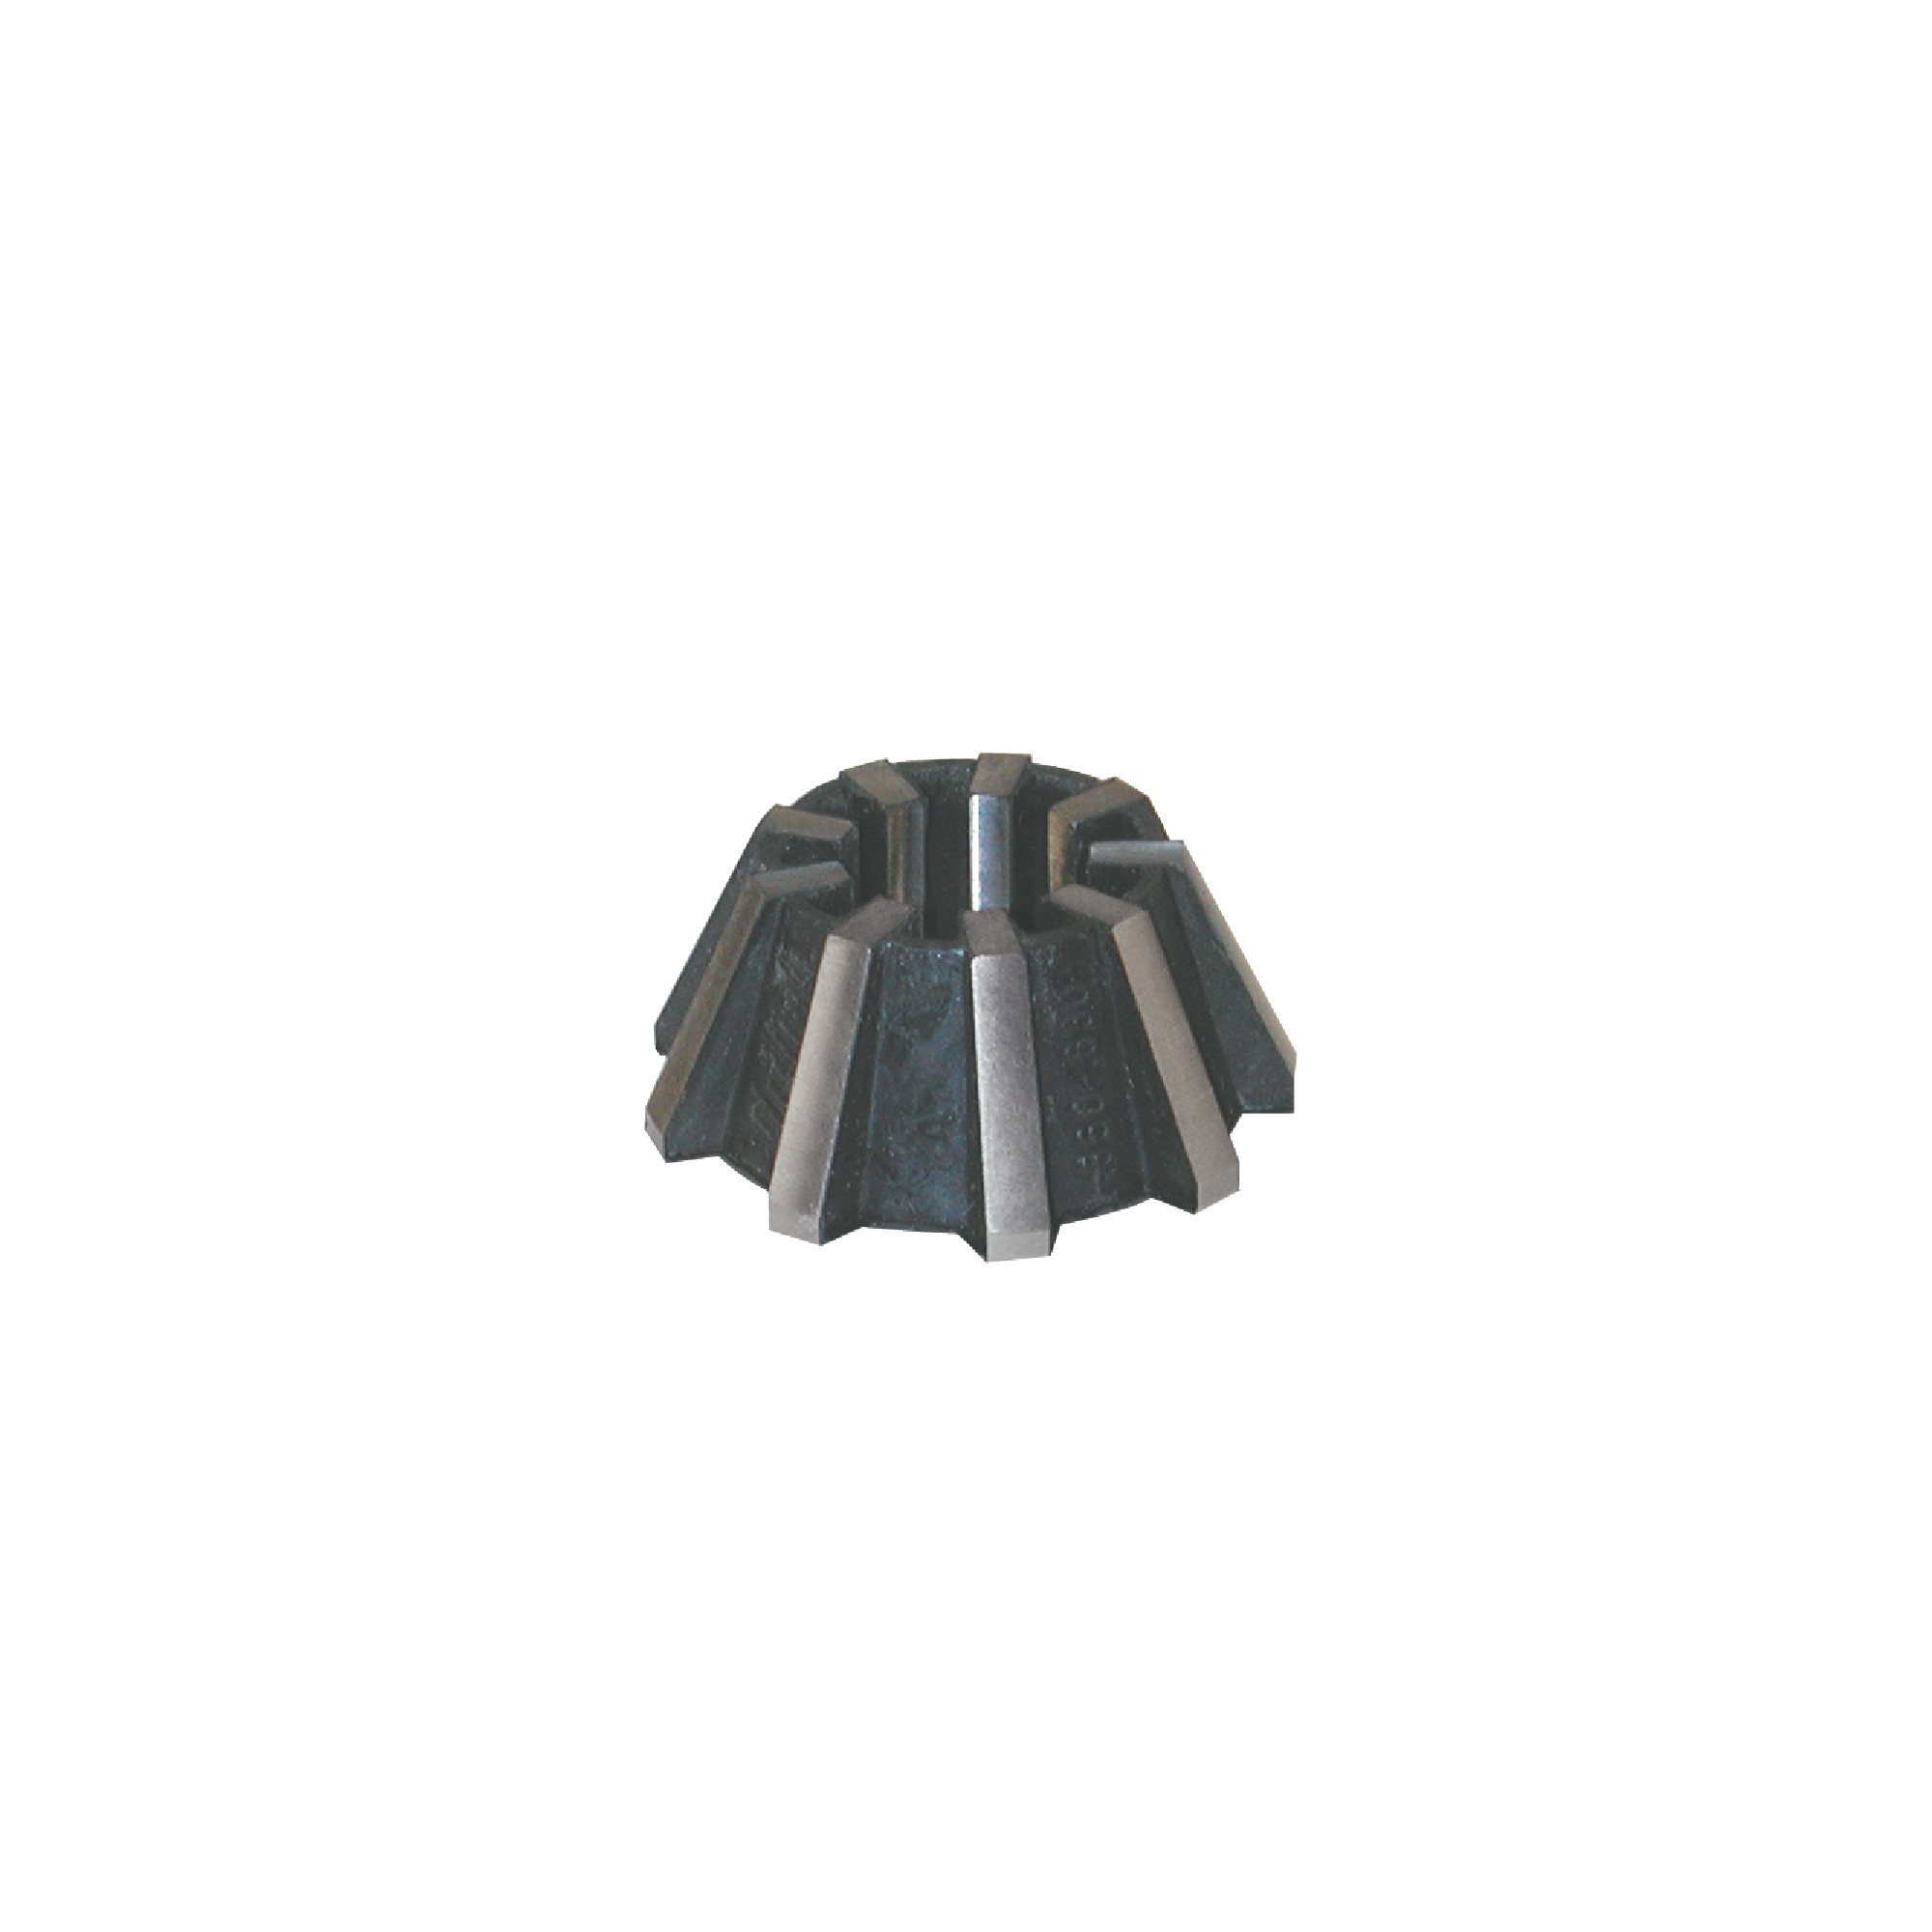 Rubberized Collet for Tapping Attachment